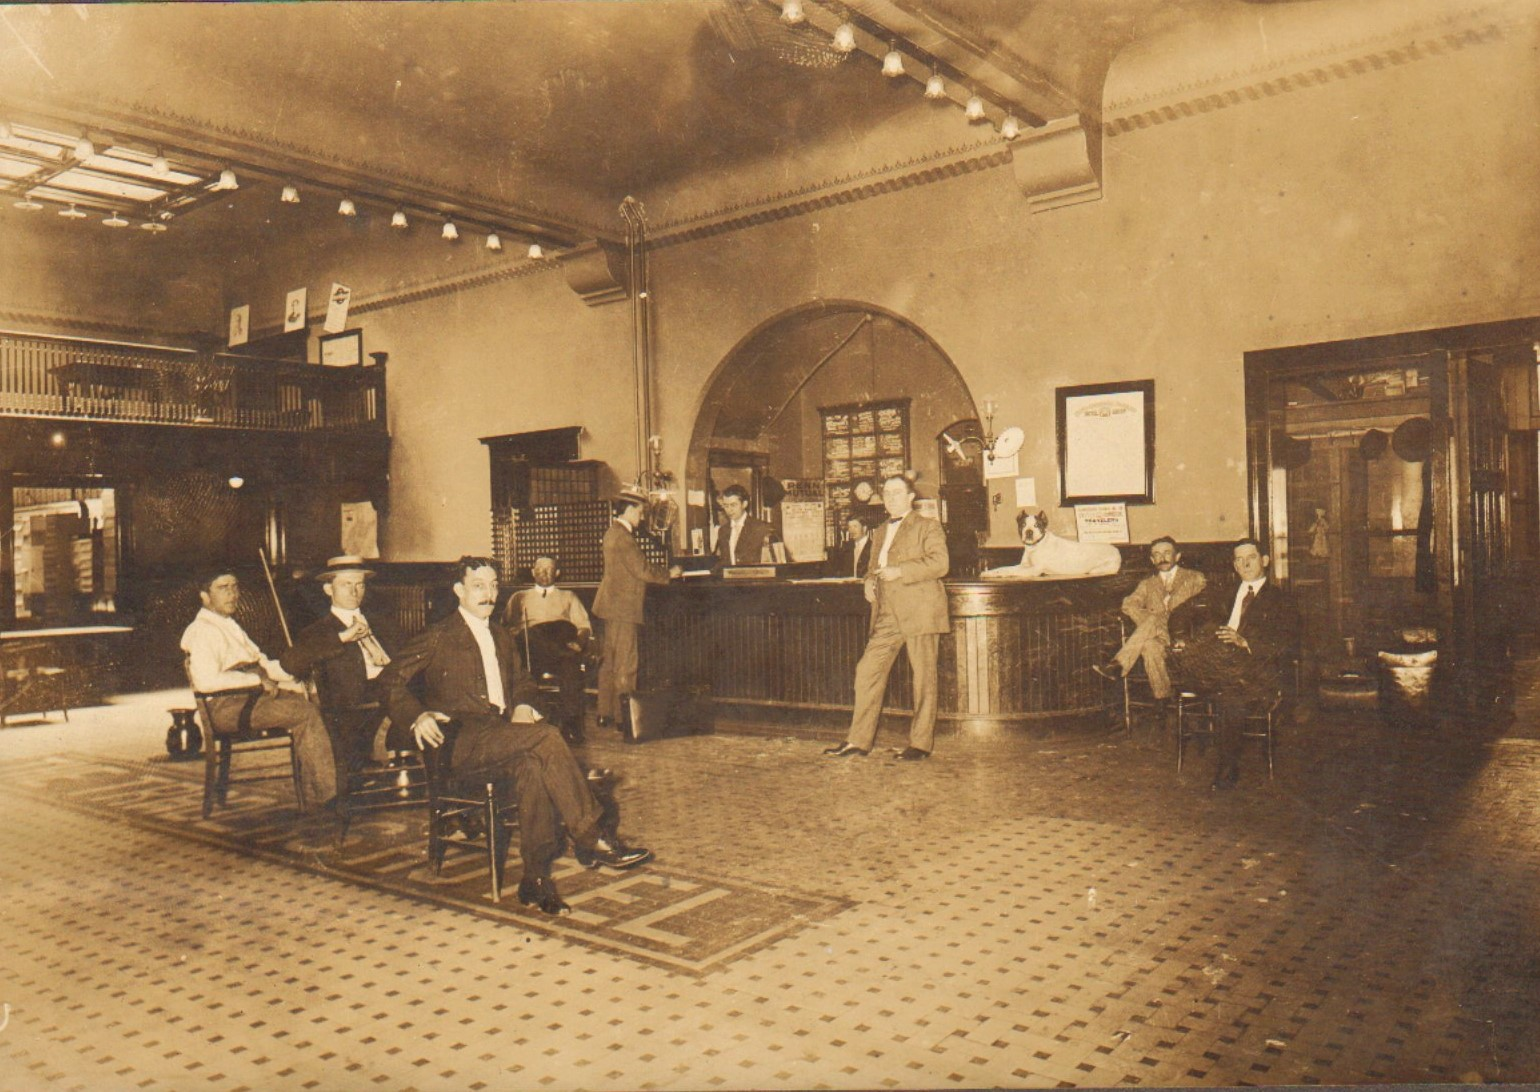 Photograph of the lobby of the Traders Hotel.